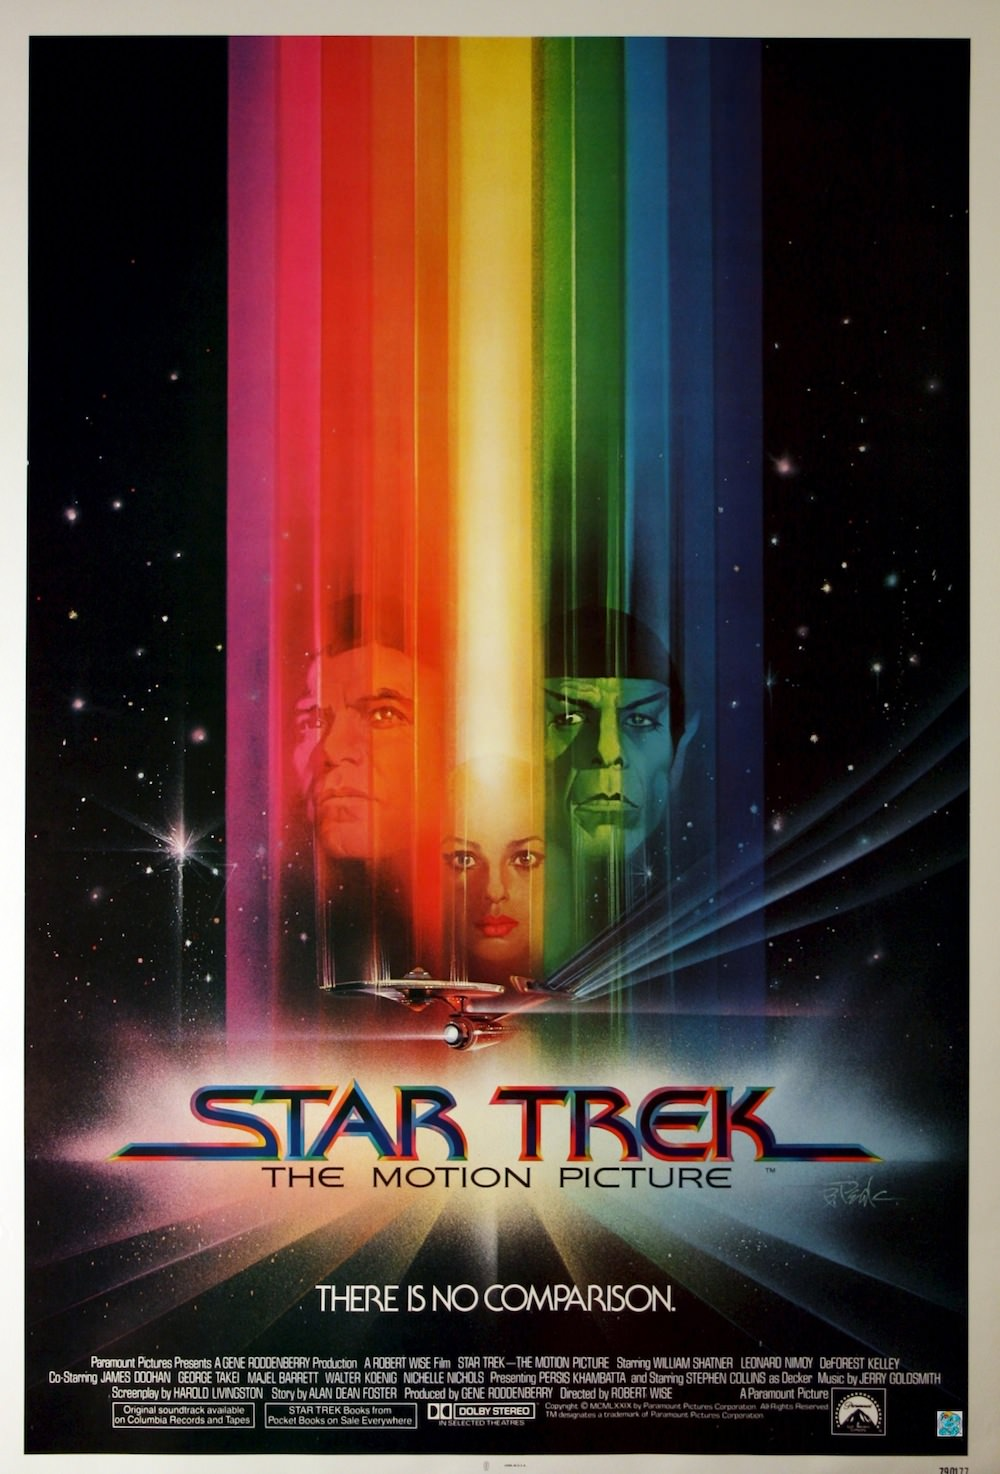 Star trek le film robert wise